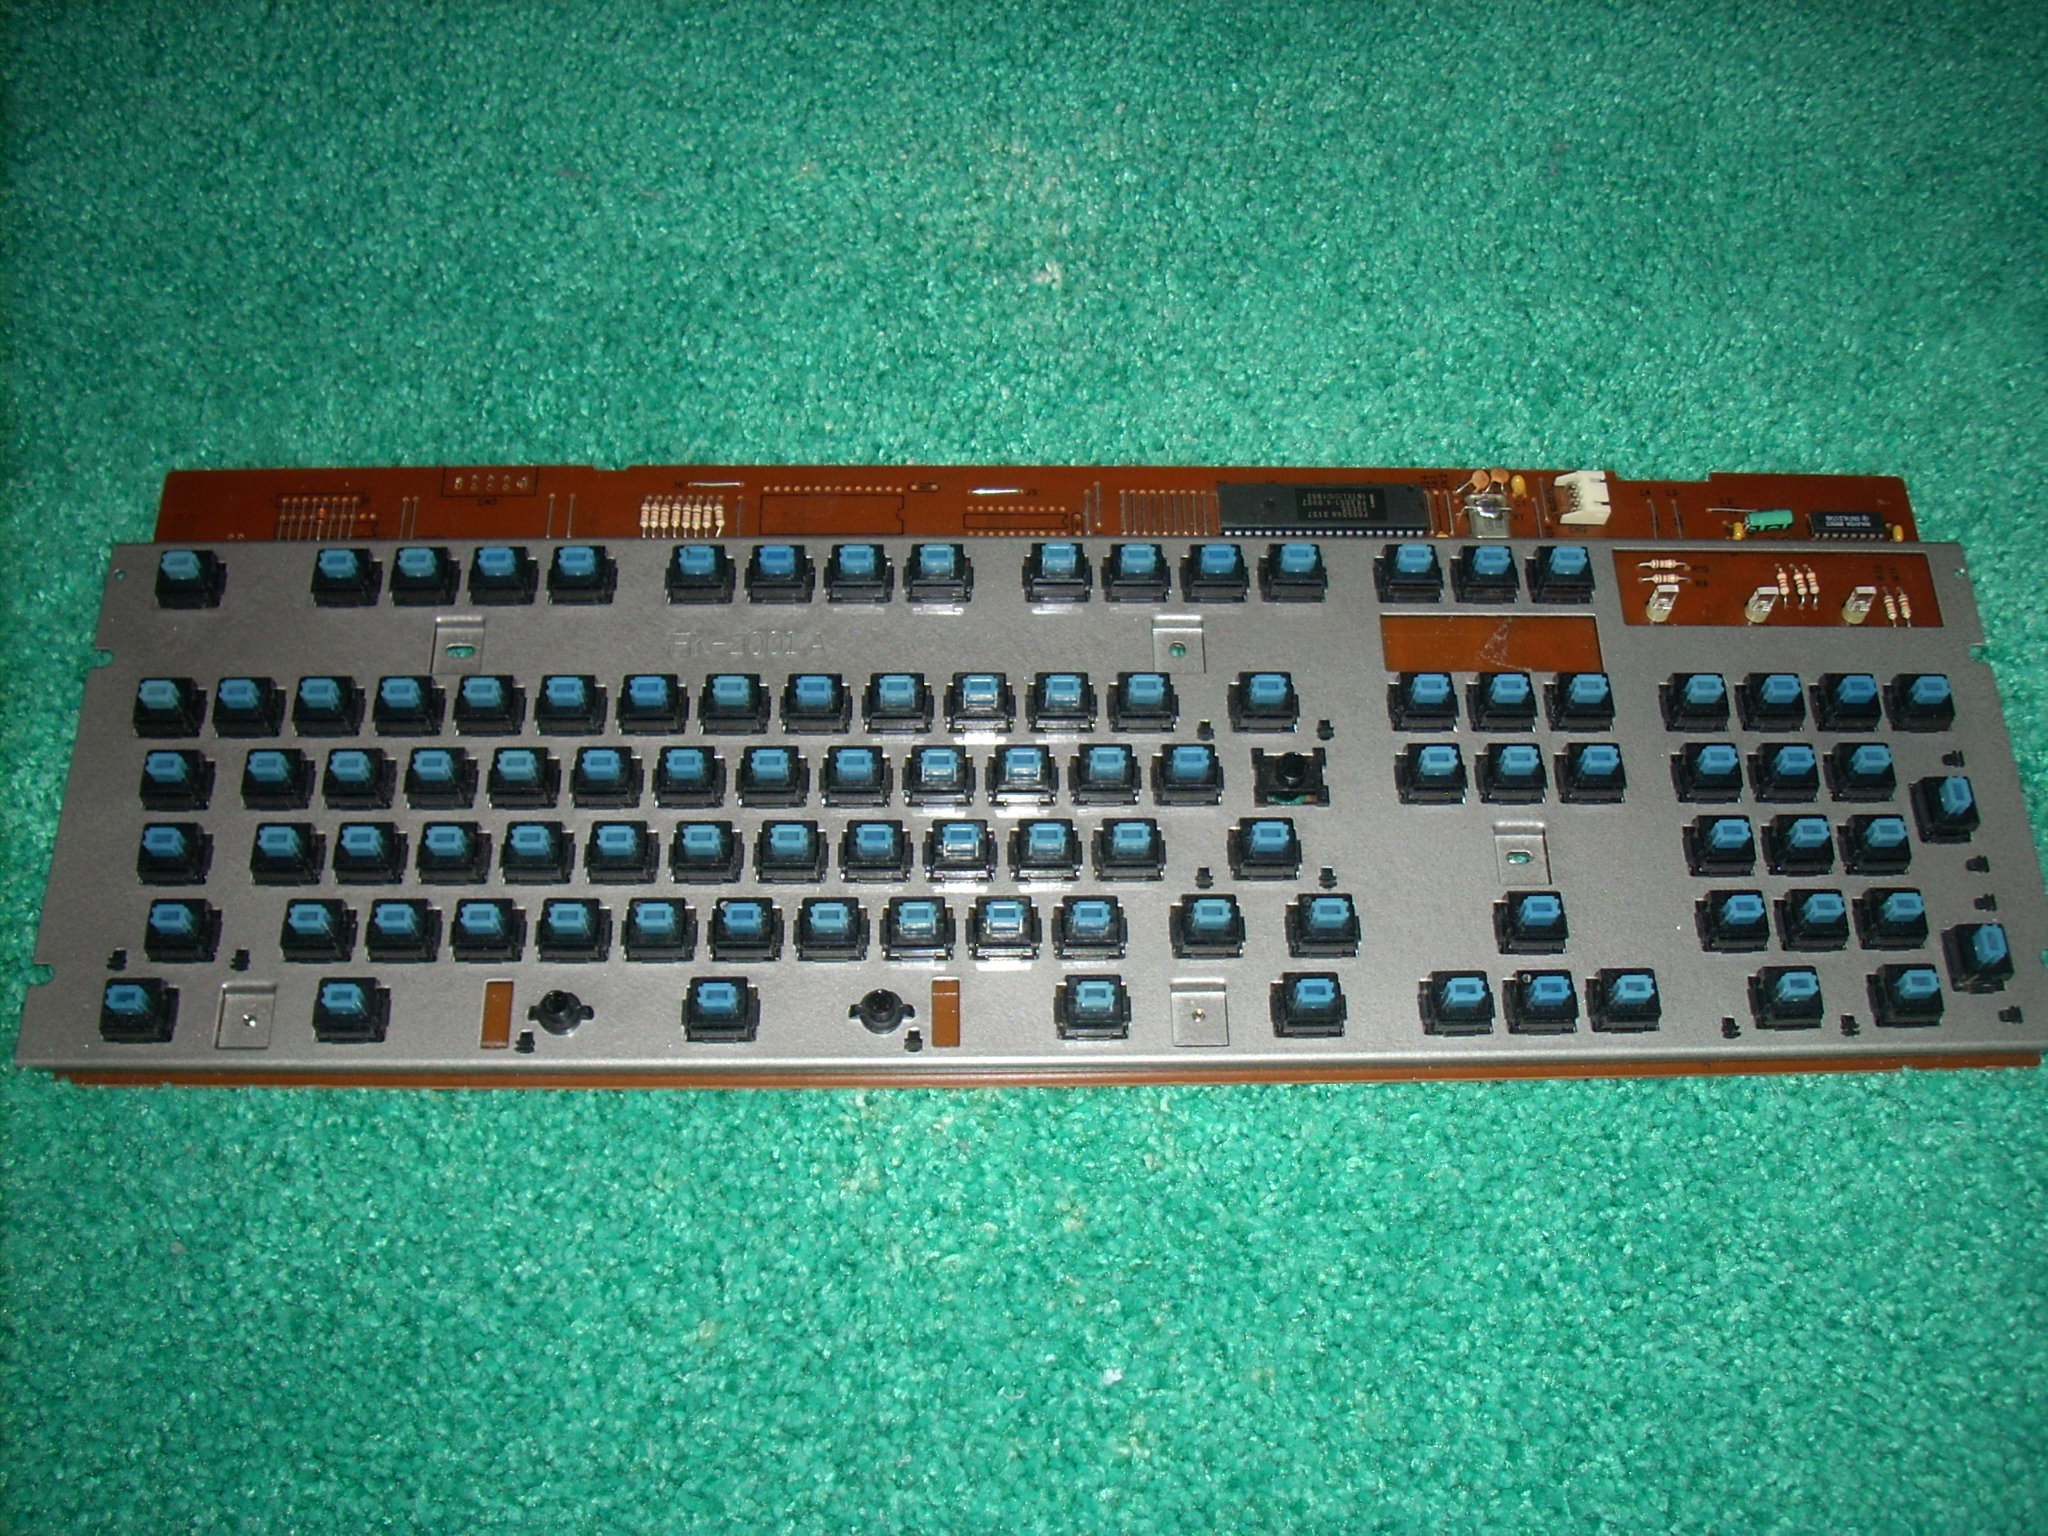 PCB and plate reassembled